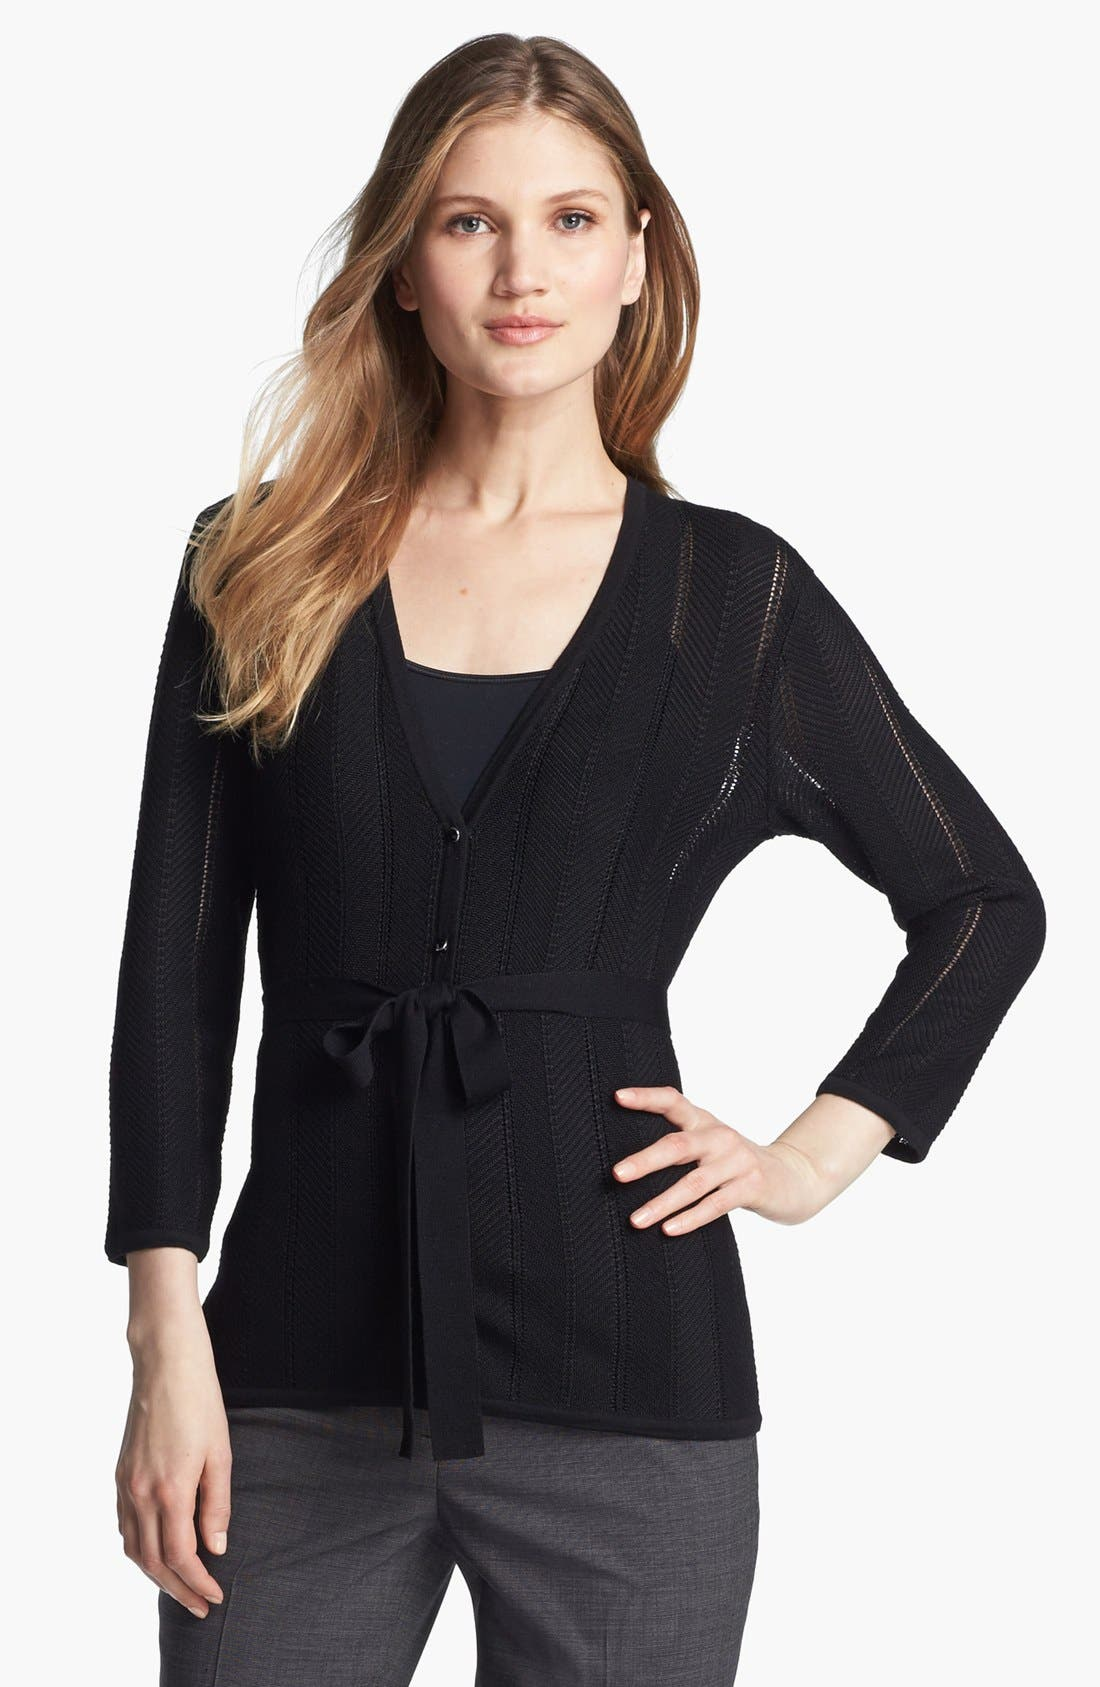 Alternate Image 1 Selected - Classiques Entier® 'Bella Lana' Belted Cardigan